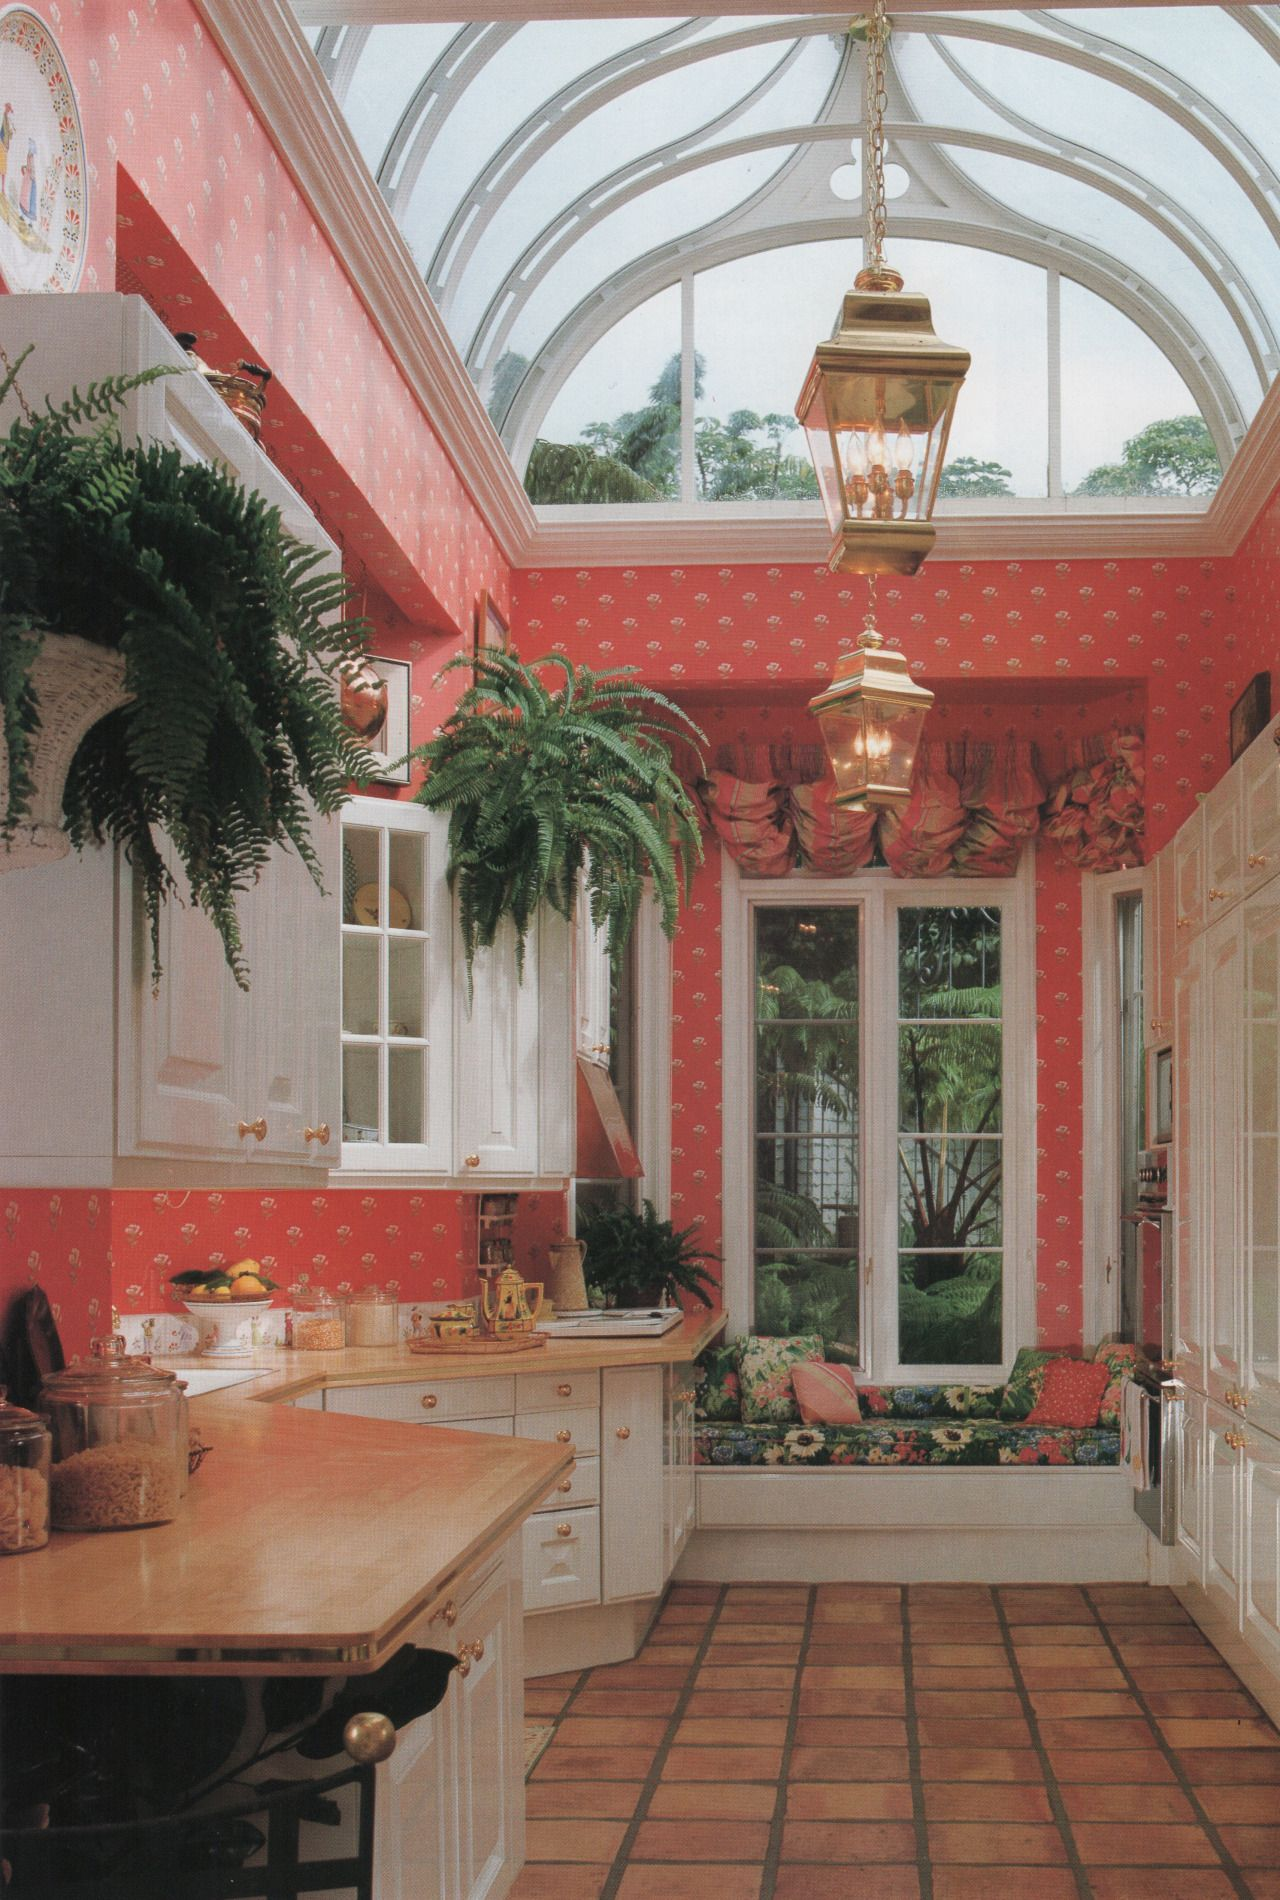 Vintage house interior design from showcase of interior design pacific edition   home